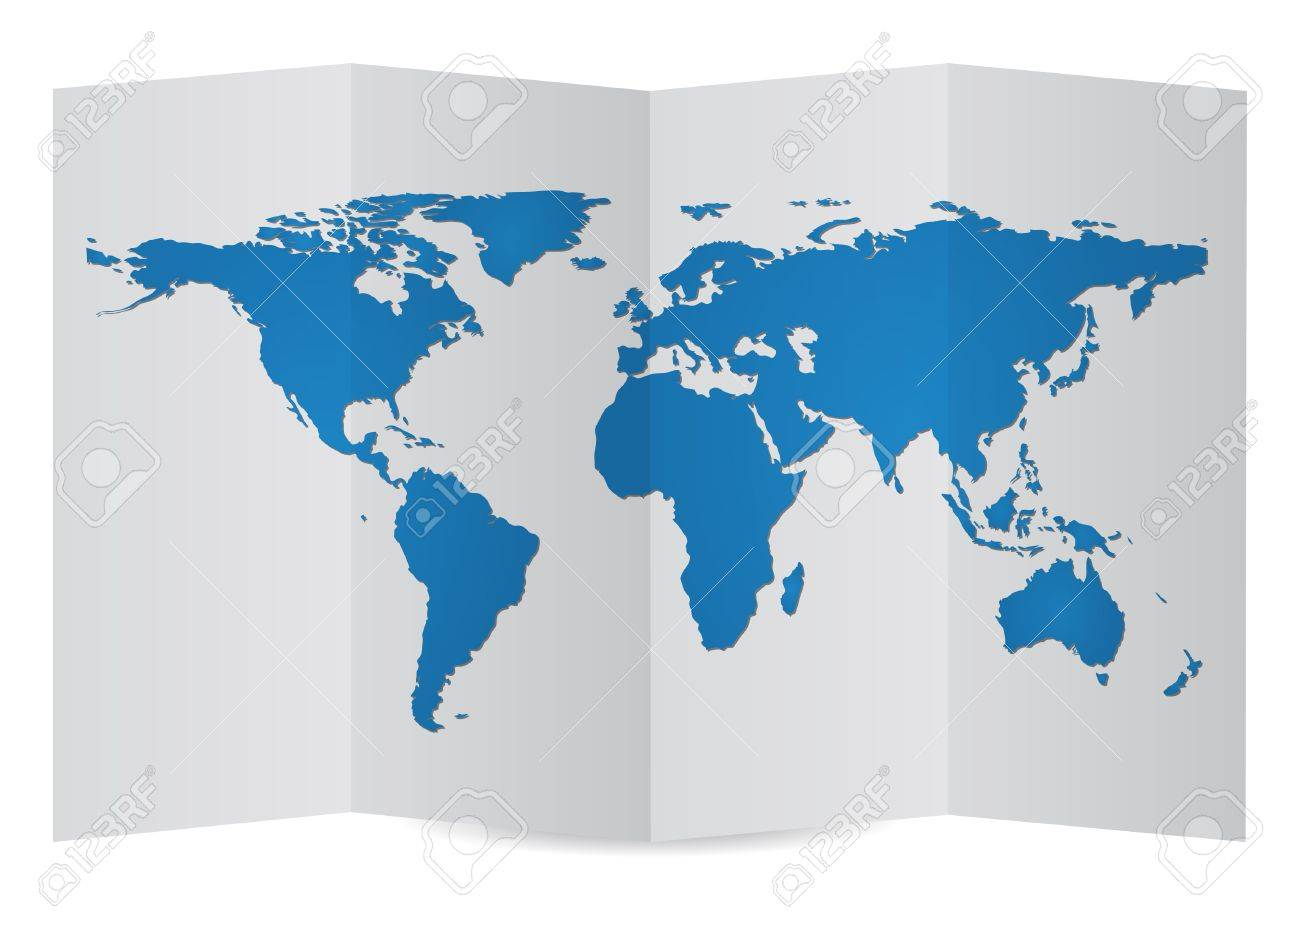 World map globe on folder paper vector illustration eps 10 royalty vector world map globe on folder paper vector illustration eps 10 gumiabroncs Image collections